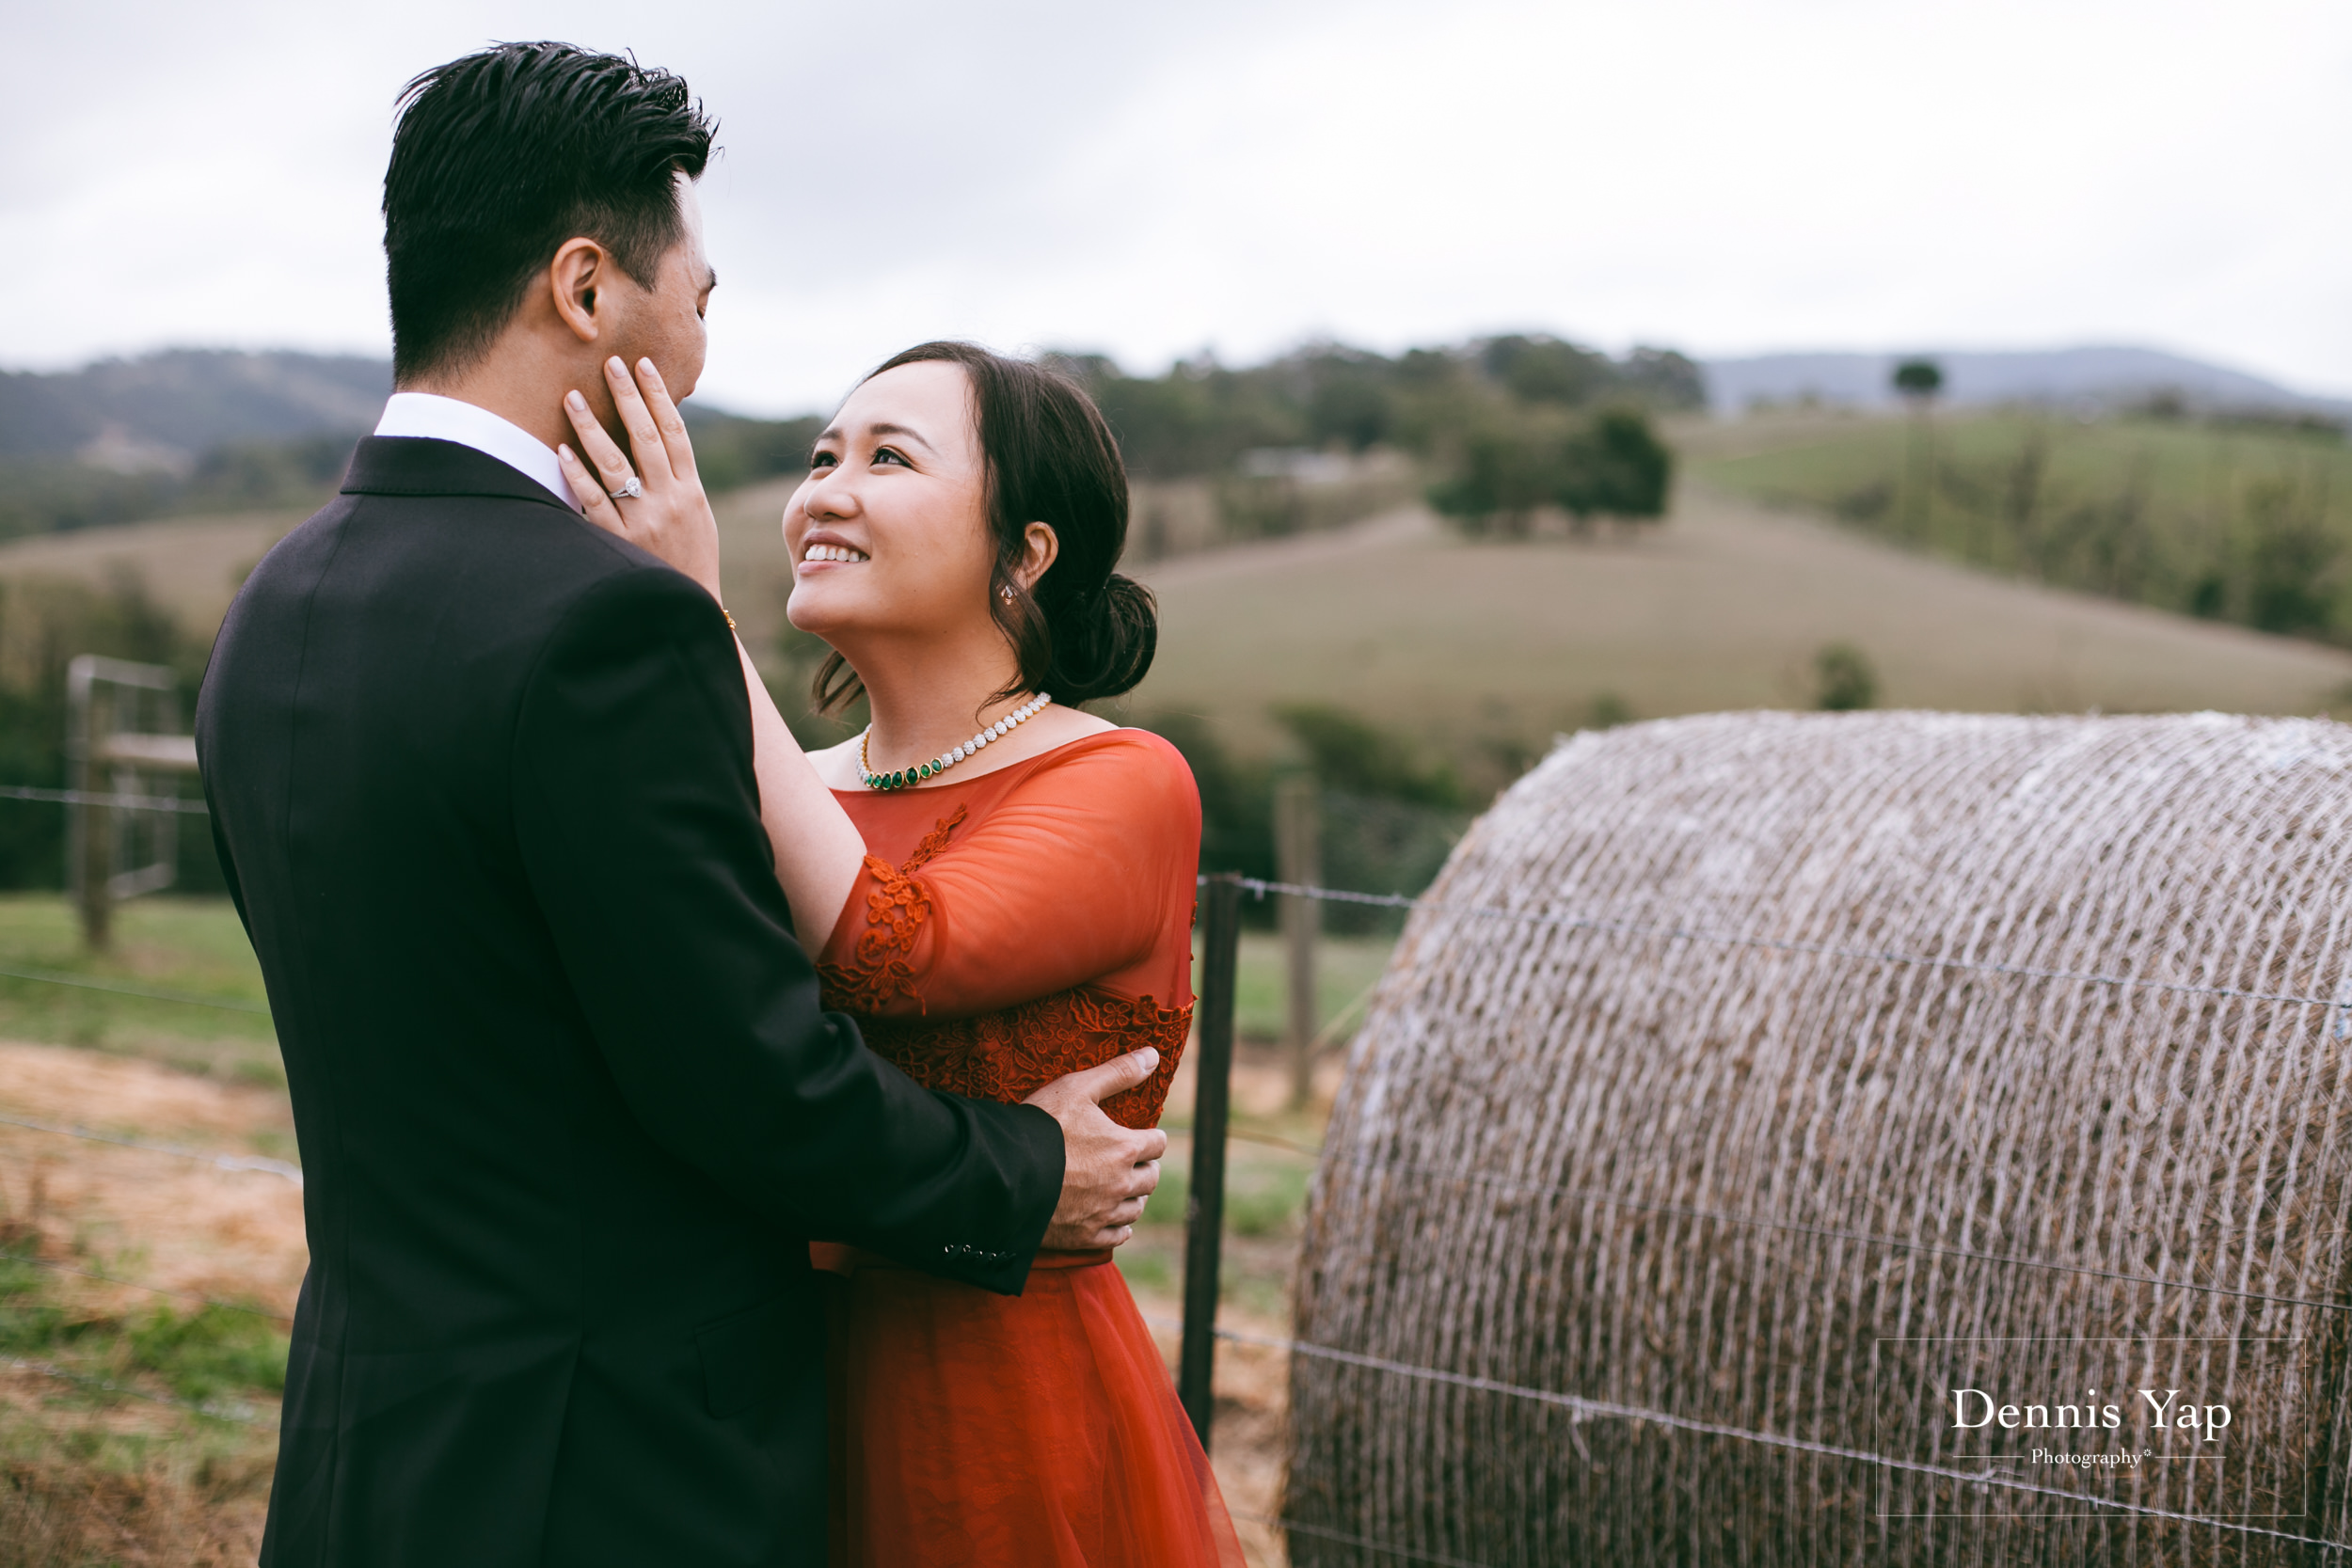 tony daphne wedding day melbourne RACV dennis yap photography malaysia top photographer beloved real moments-21.jpg